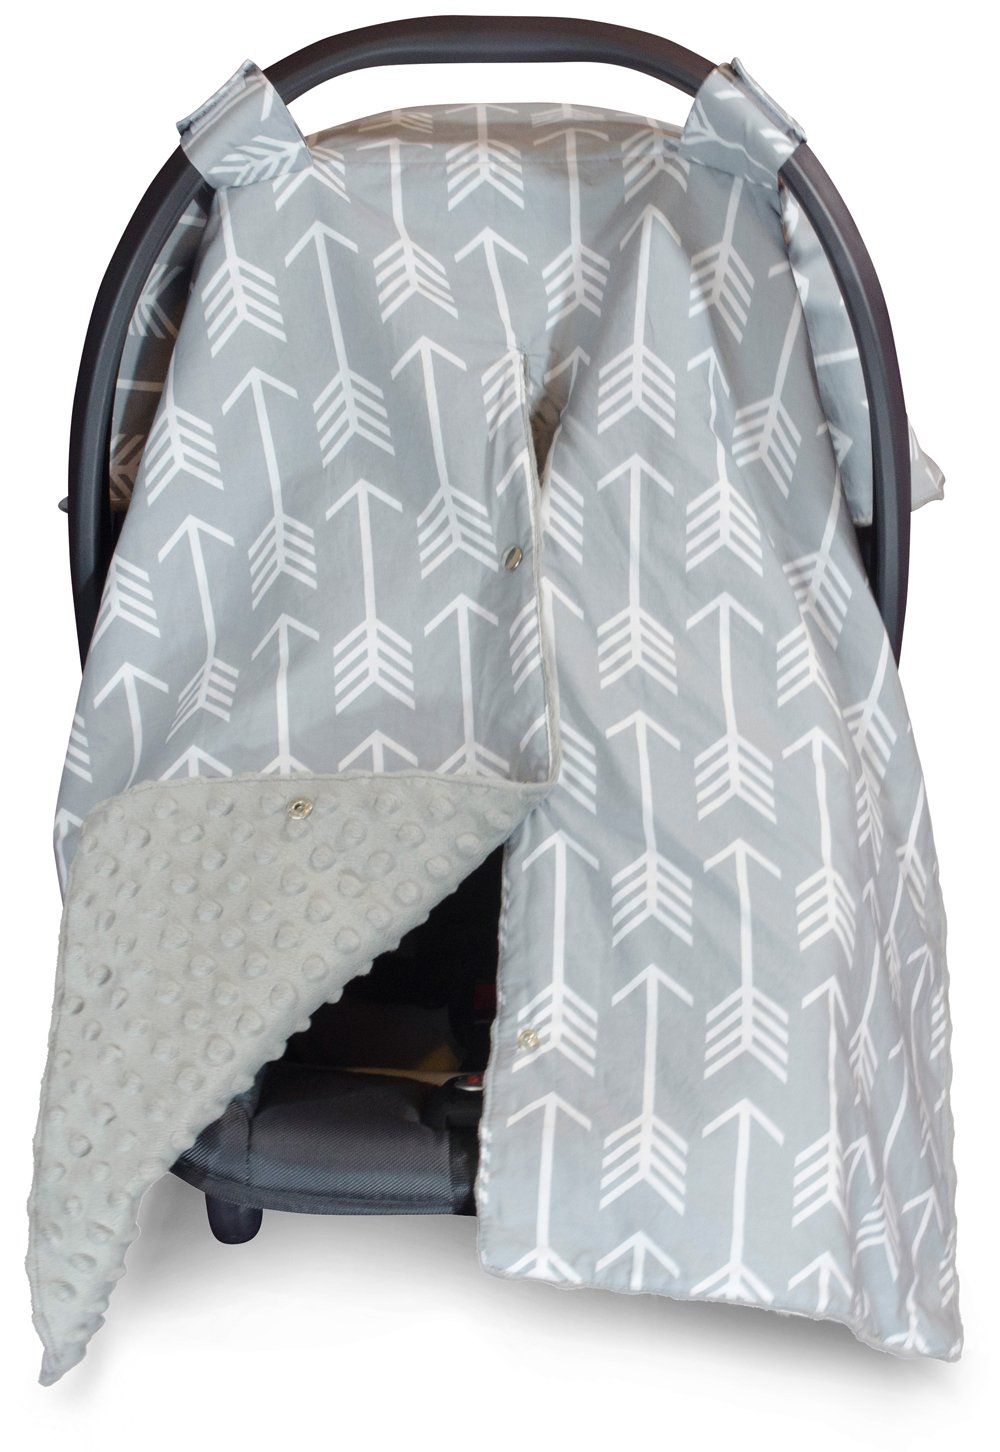 Kids N' Such 2 in 1 Car Seat Canopy Cover with Peekaboo Opening Large Arrow Carseat Cover with Grey Dot Minky... by Kids N%27 Such